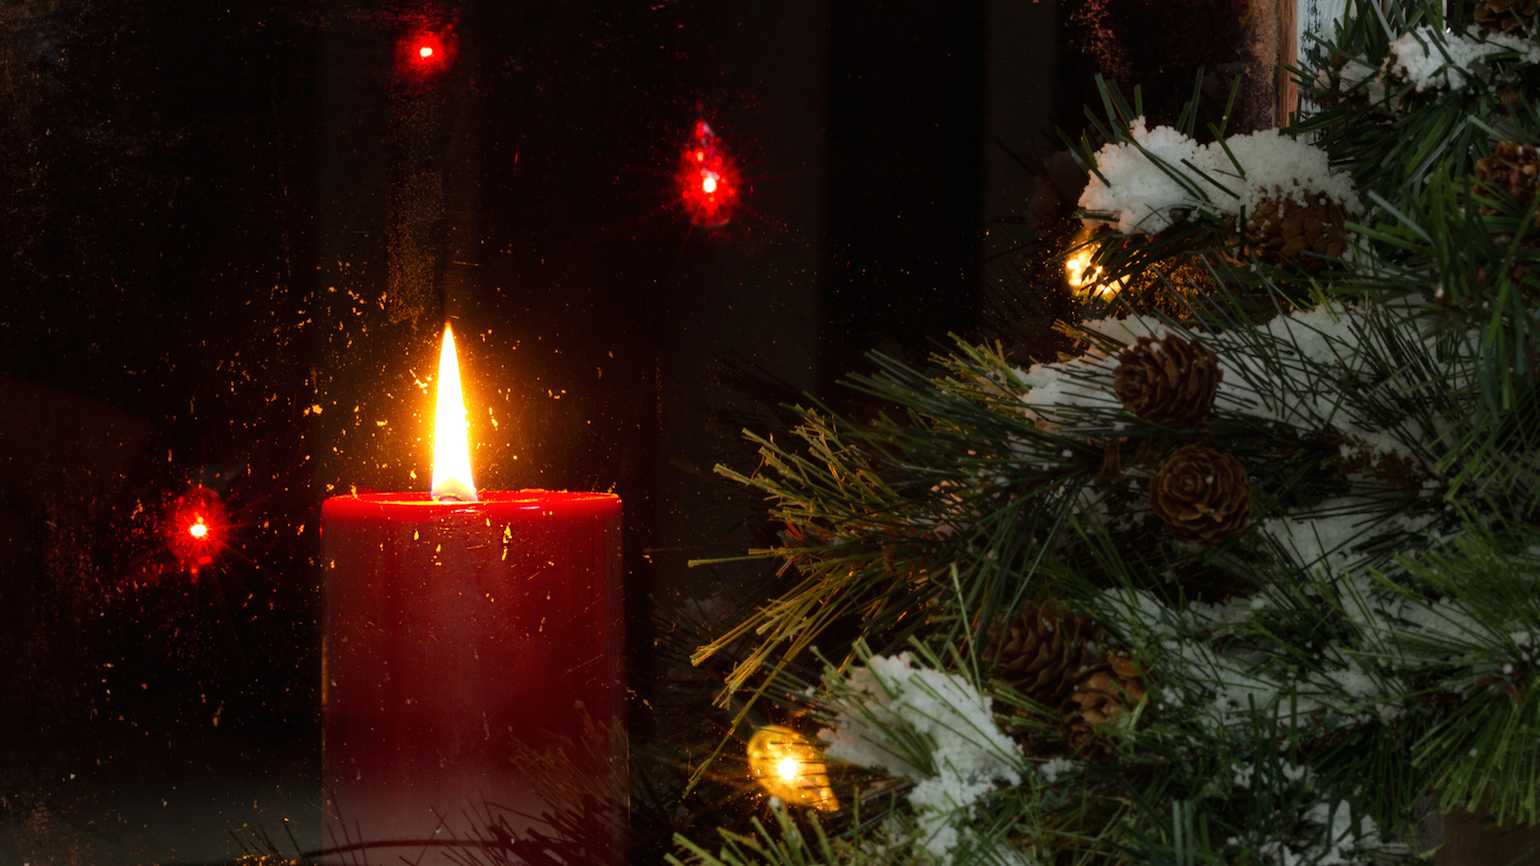 A prayer for those suffering at Christmas | Guideposts